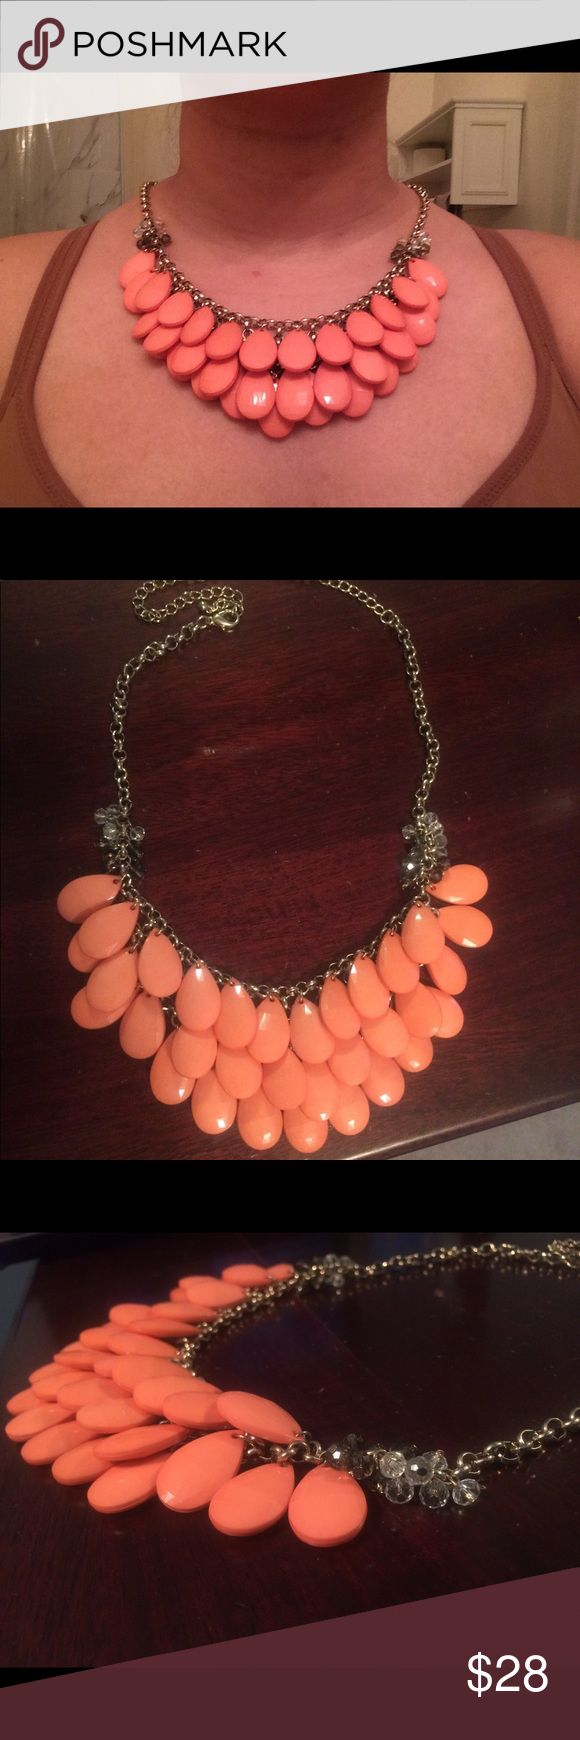 Francesca's coral/peach necklace This is a statement piece. It has lovely coral teardrop beads, and then more transparent grey and clear beads on either side of the coral. The gold colored chain is adjustable, so you can change it based on the neckline of whatever garment you're wearing! The color pops with almost anything and will make you the center of attention.   Like new, only worn once to a gala. (I wore a jungle green dress). Francesca's Collections Jewelry Necklaces